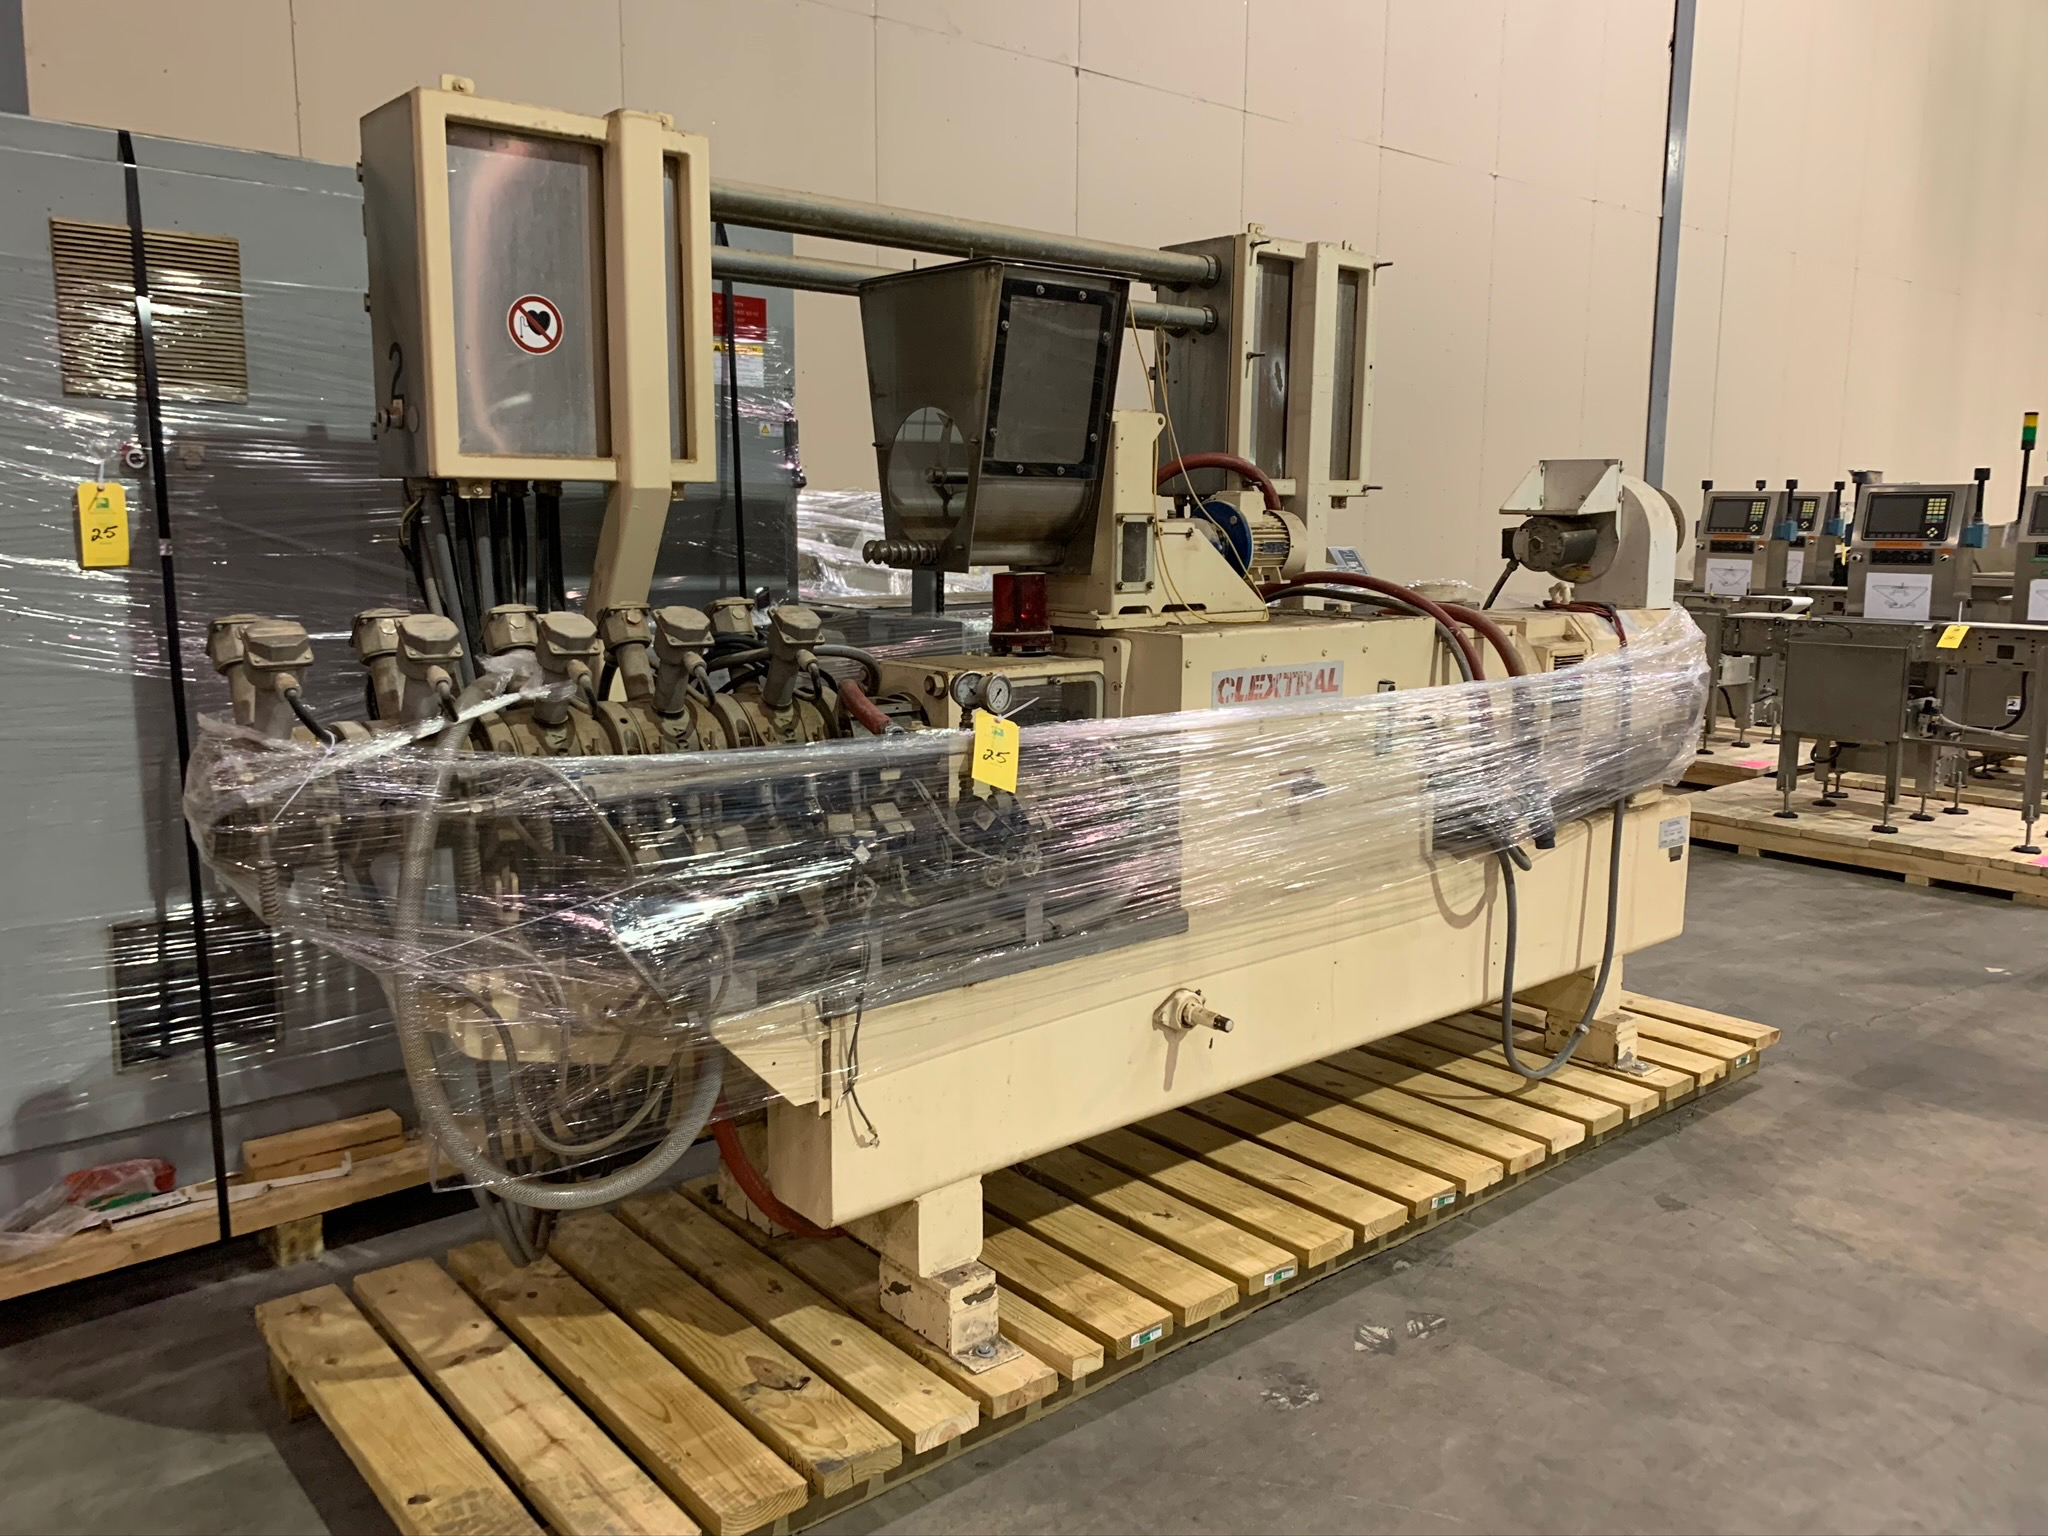 Lot 25 - Clextral Extruder Model BC4 S/N 5100909 with Contol Panel and Air Dryer (Rigging Fee - $500)